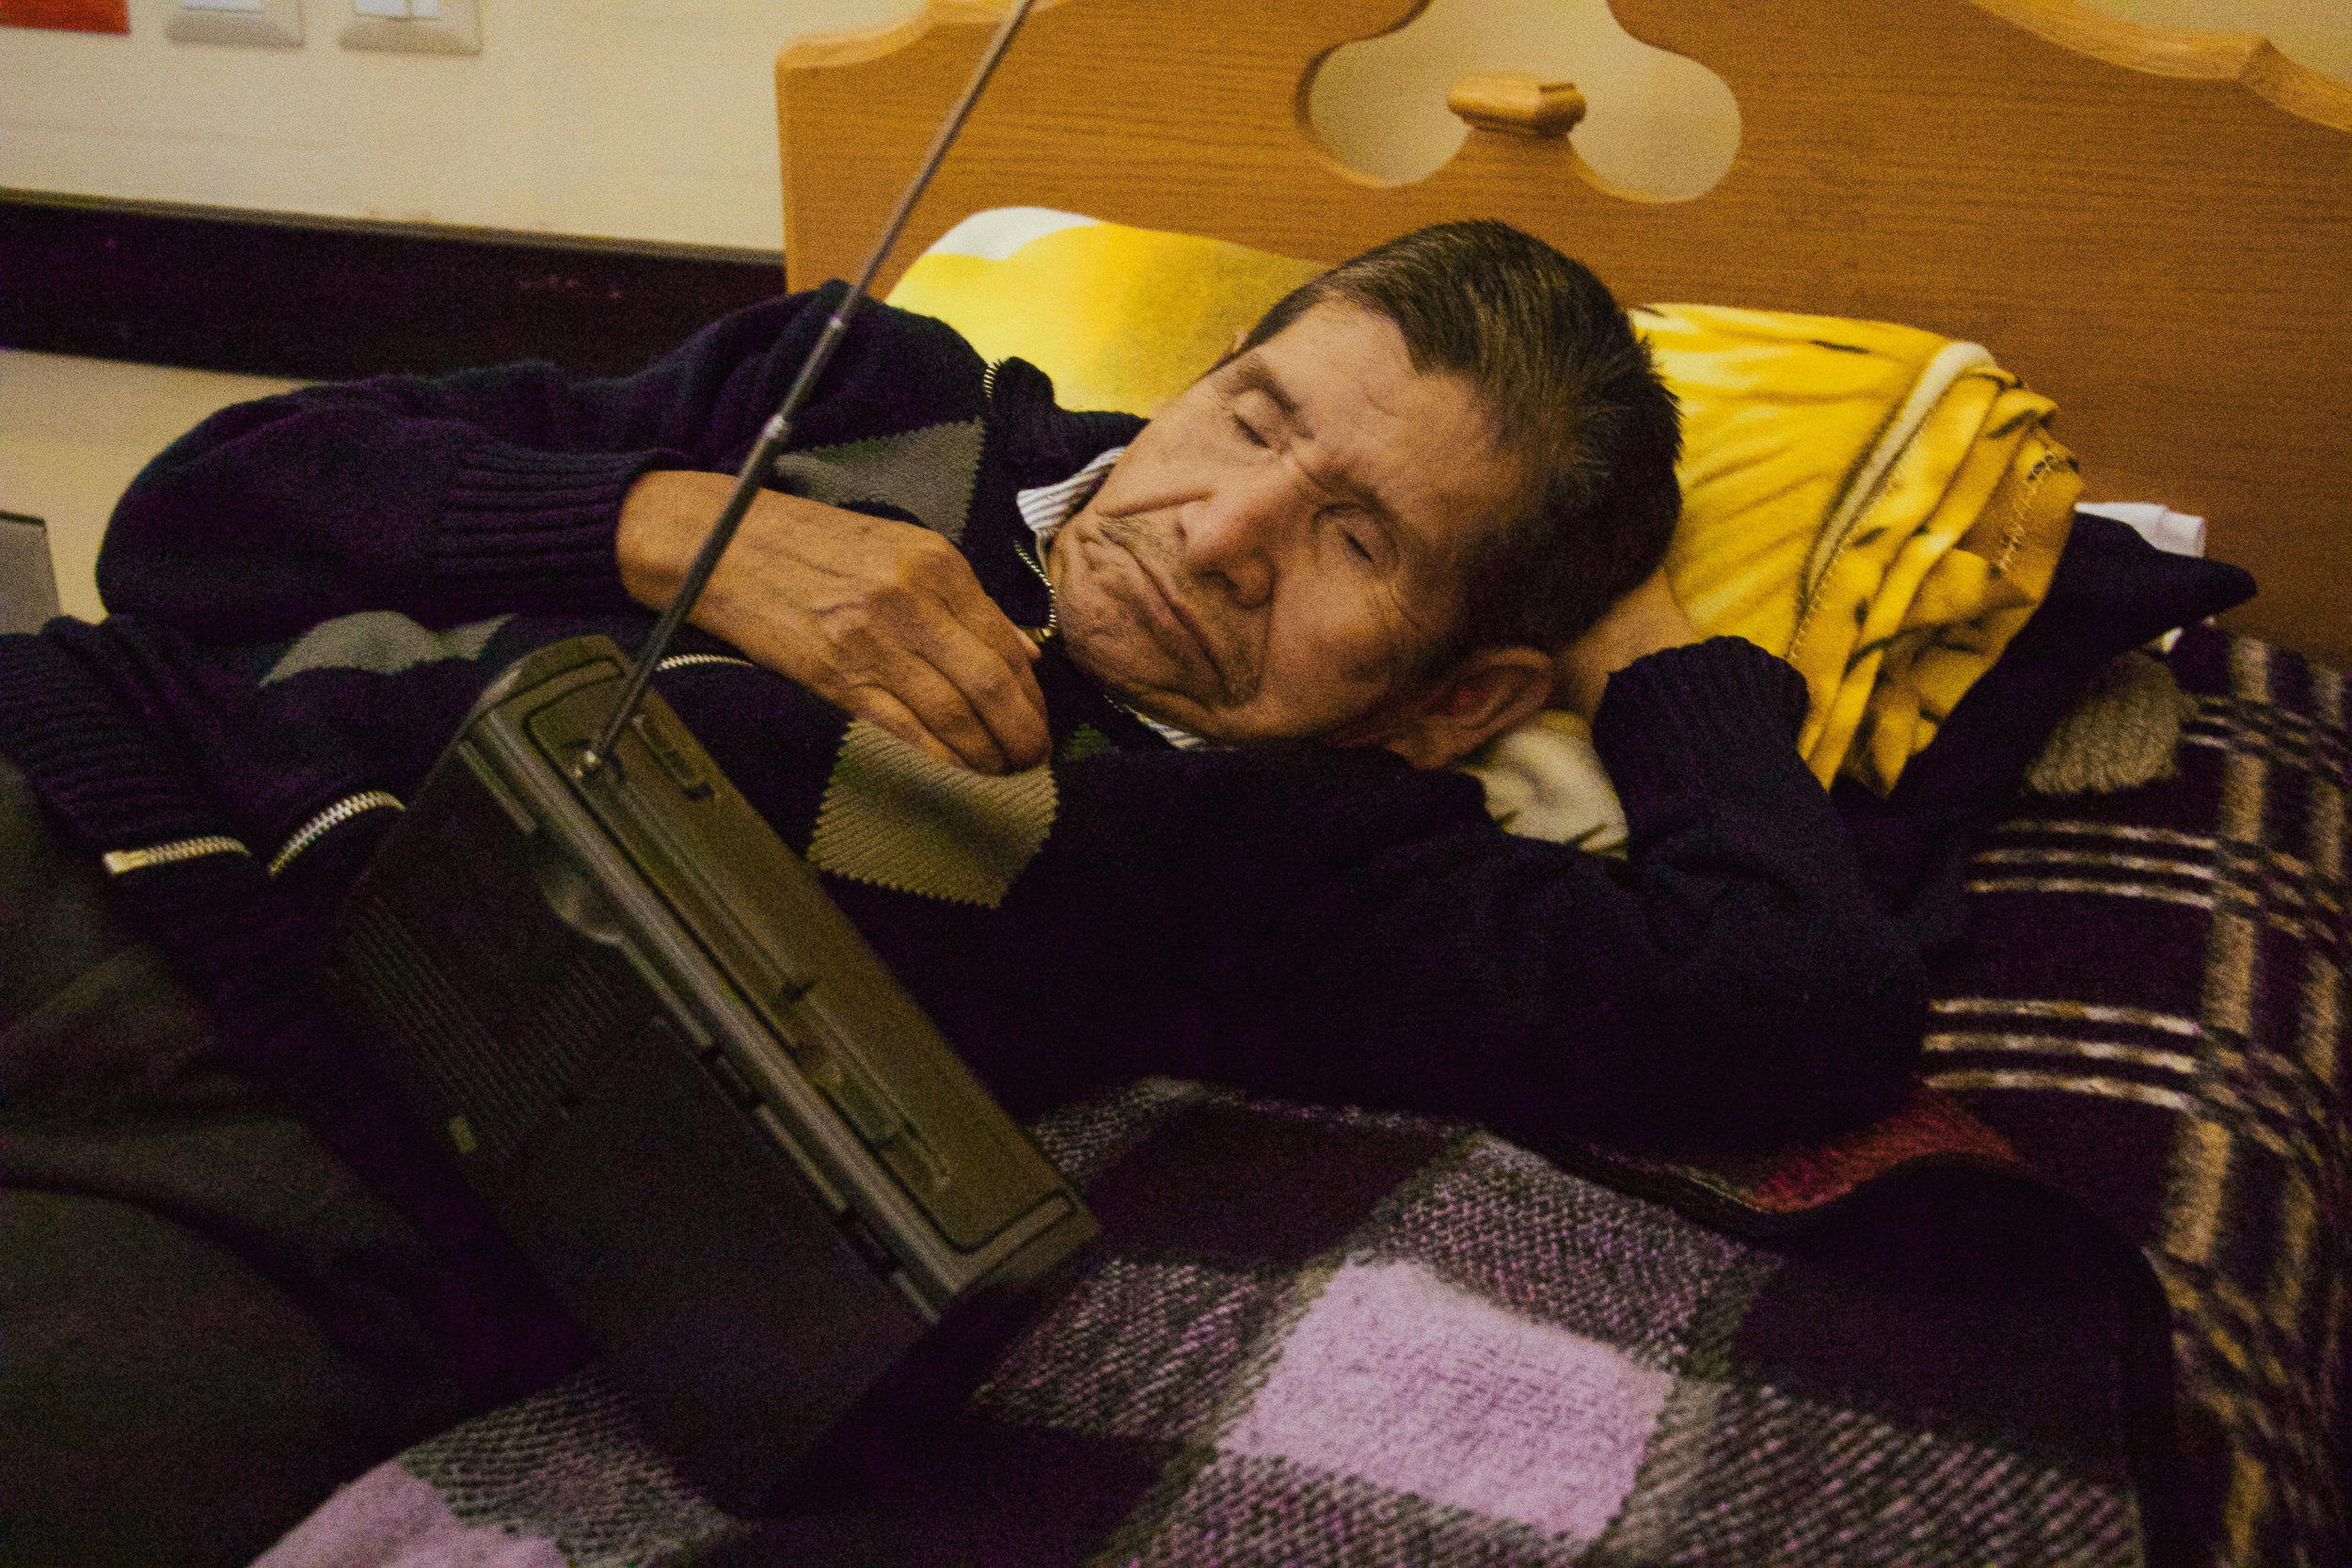 Photo by Miranda Weippert ANTONIO RAMÍREZ, 67, LAYS PEACEFULLY ON HIS PLAID SHEETS WITH HIS HANDHELD RADIO AT HIS SIDE AT VIRGEN DEL SOCCORRO JAN. 17. HE ENJOYS LISTENING TO NEWS WHILE HE TRIES TO SLEEP.